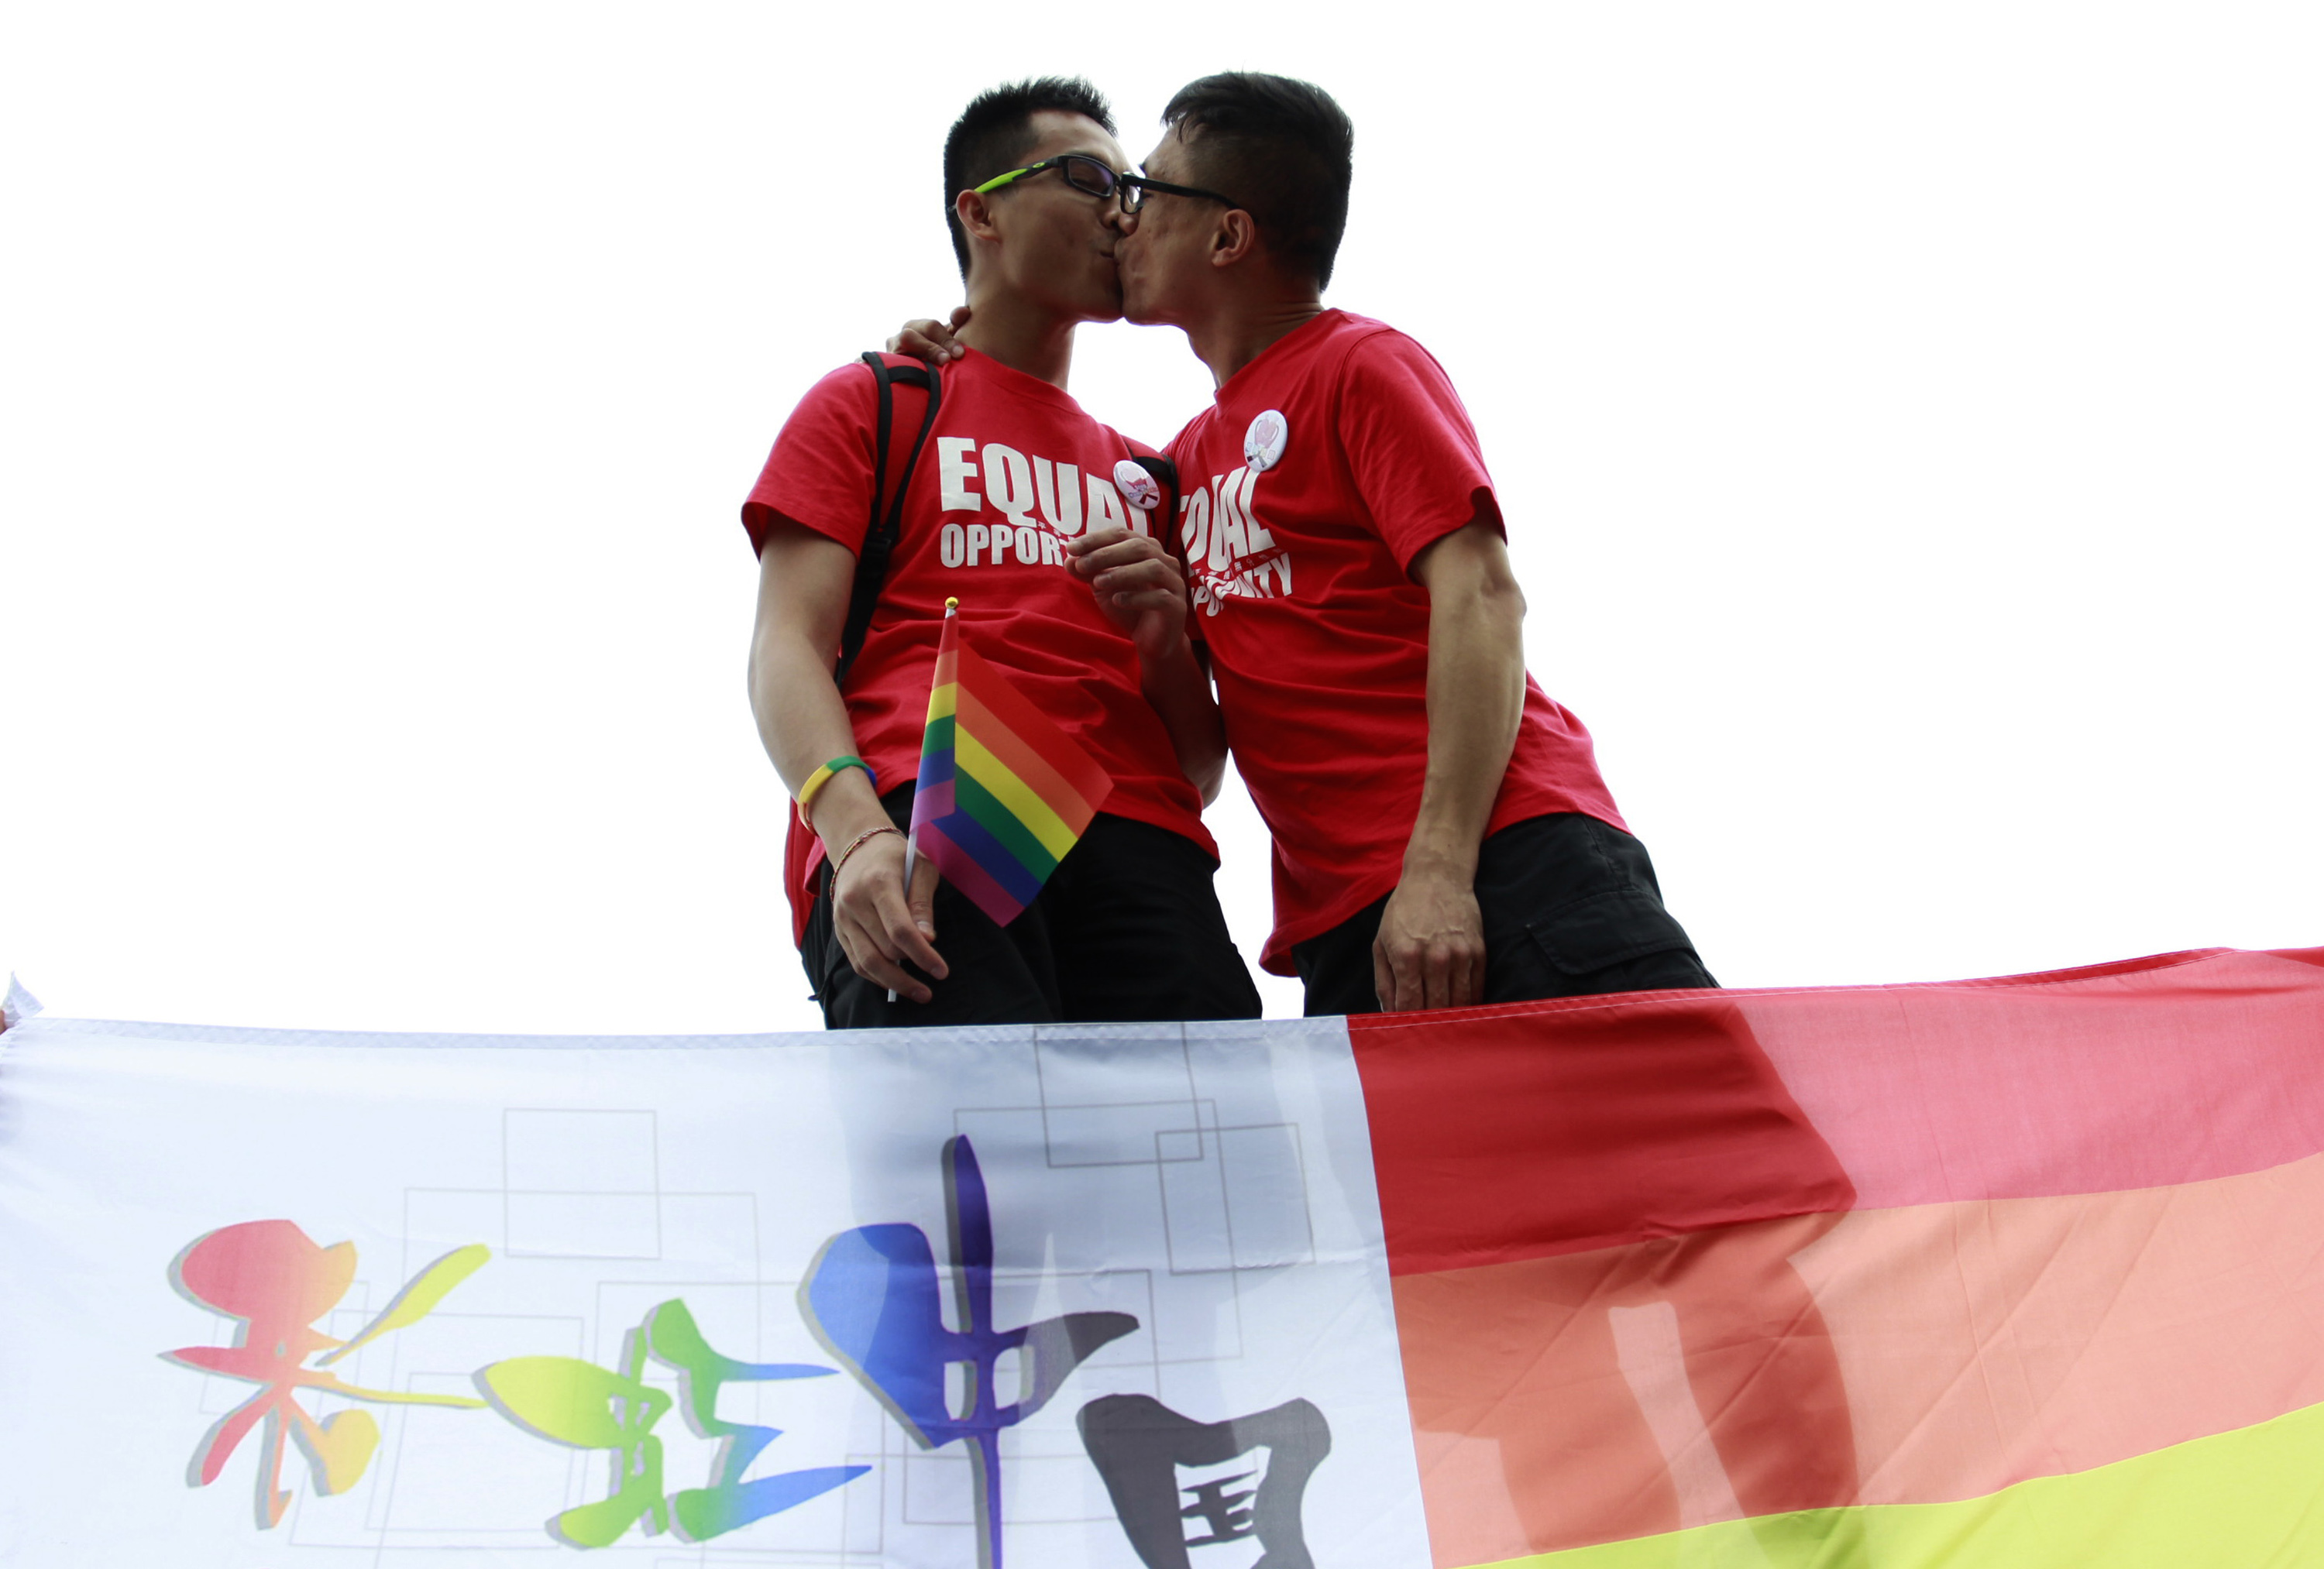 A gay couple kiss at an anti-discrimination parade in Chine, where a writer was recently jailed for including gay sex scenes in her novel.